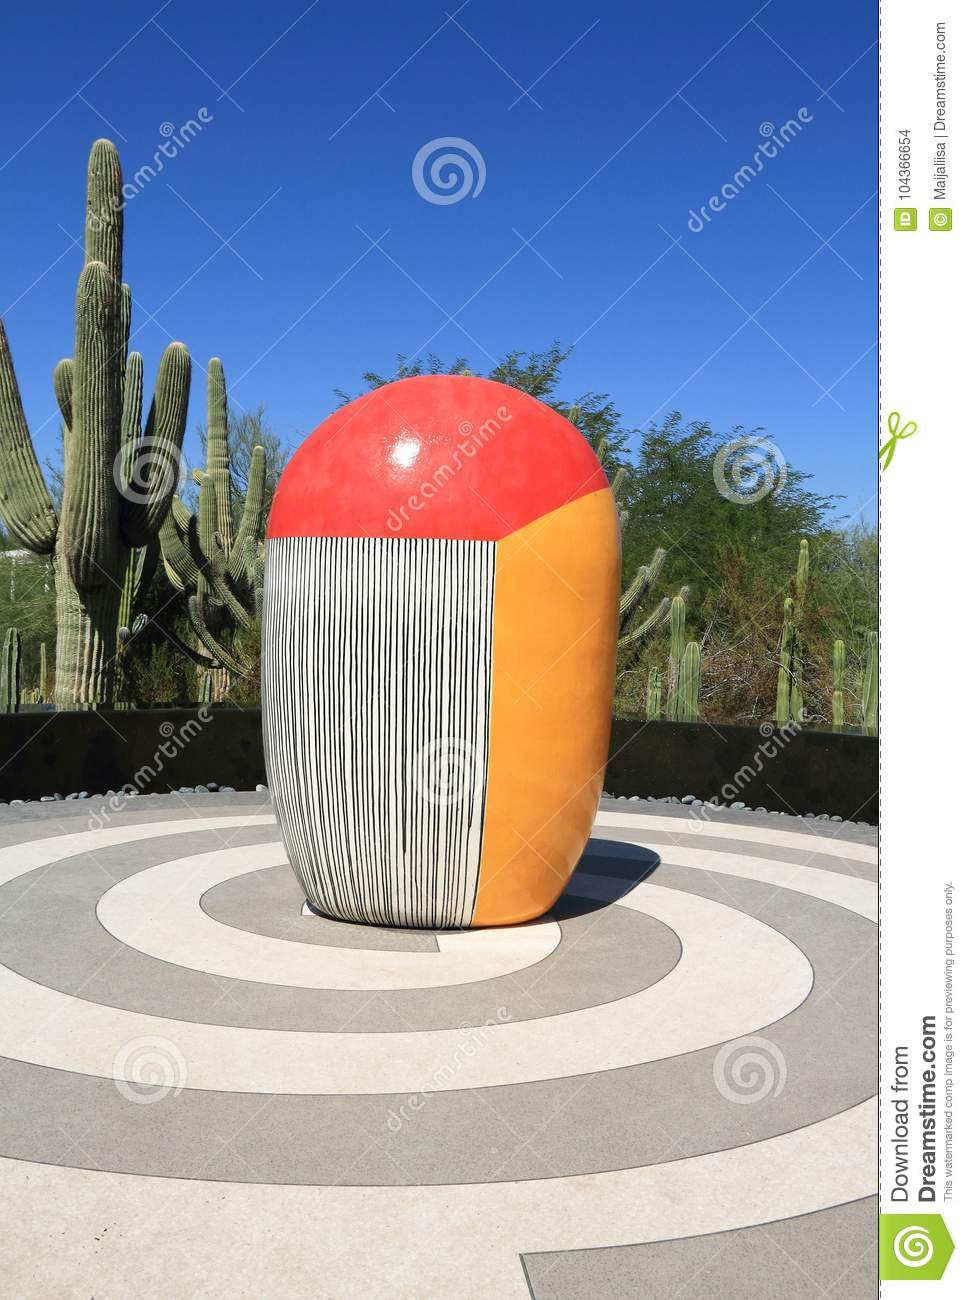 Phoenix/Tempe, o Arizona: Jun Kaneko Sculpture - CACTO de TRICOLORED